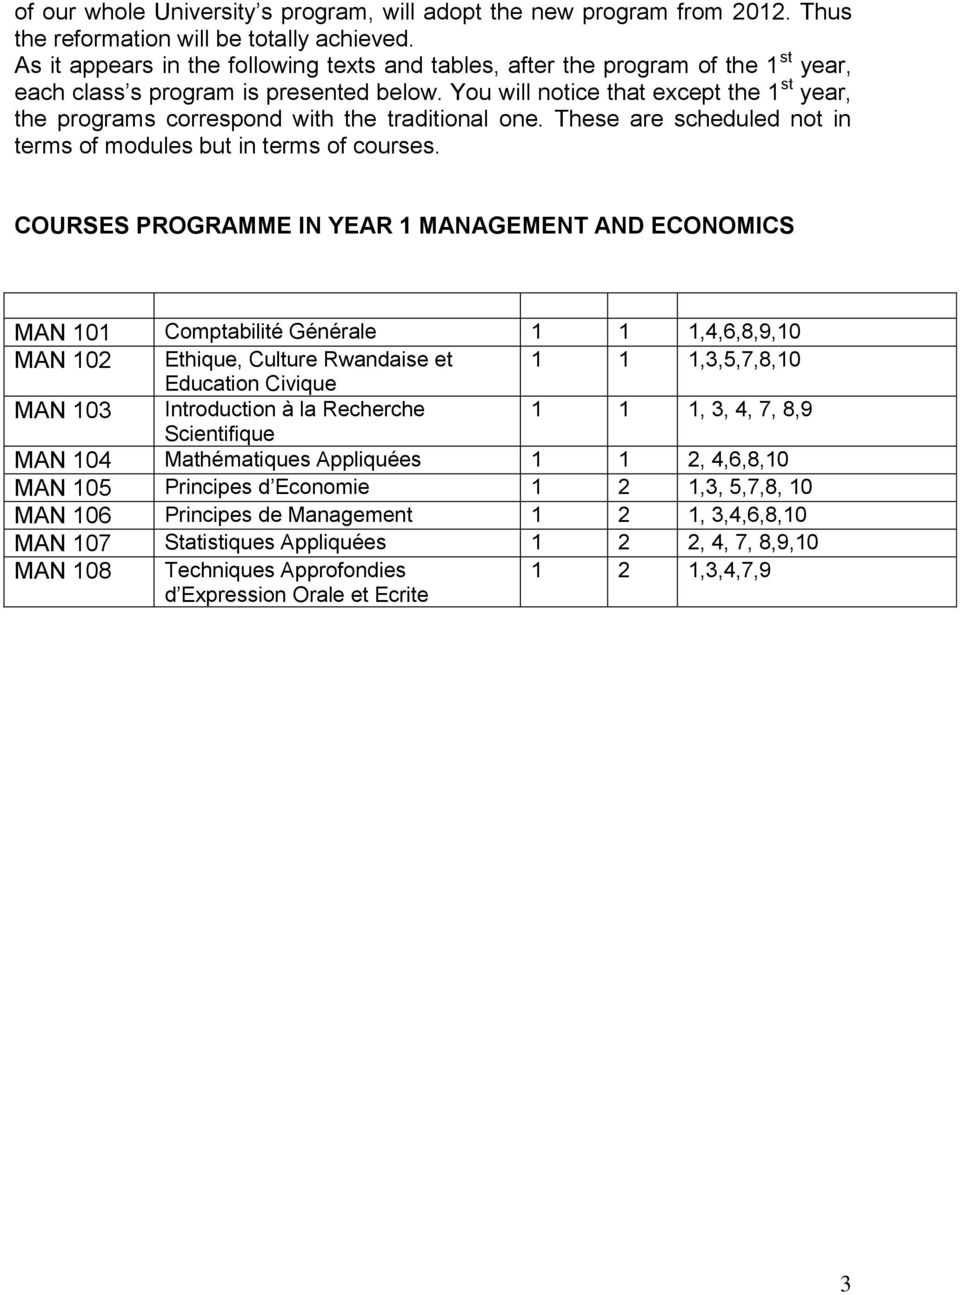 You will notice that except the 1 st year, the programs correspond with the traditional one. These are scheduled not in terms of modules but in terms of courses.